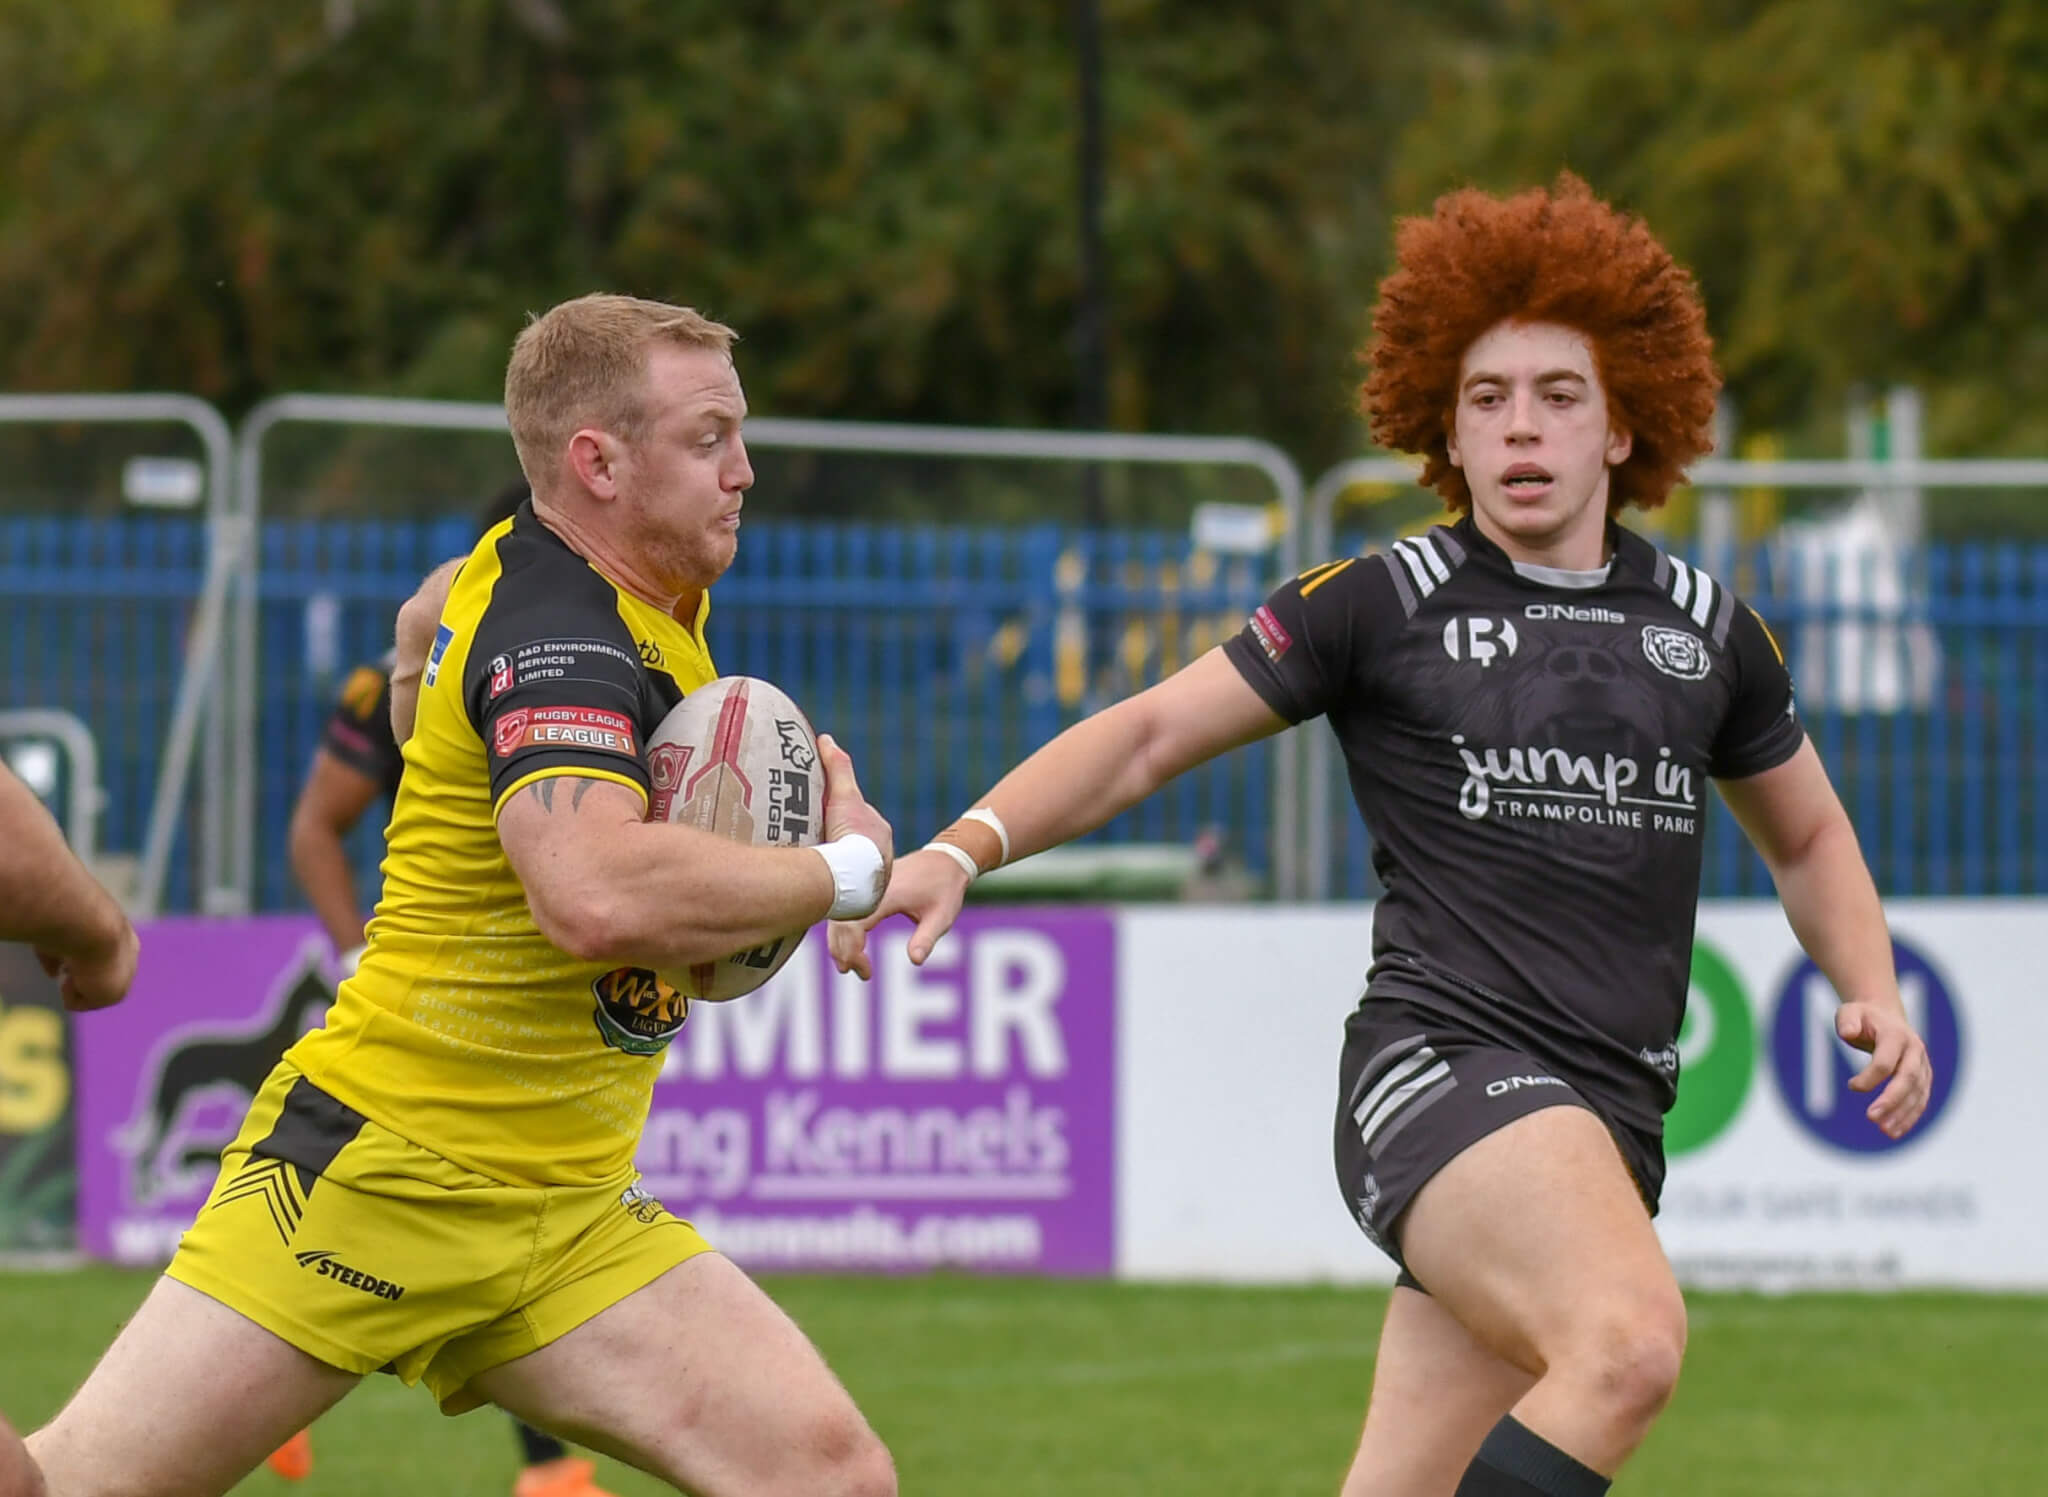 Dante Morley-Samuels joins North Wales Crusaders